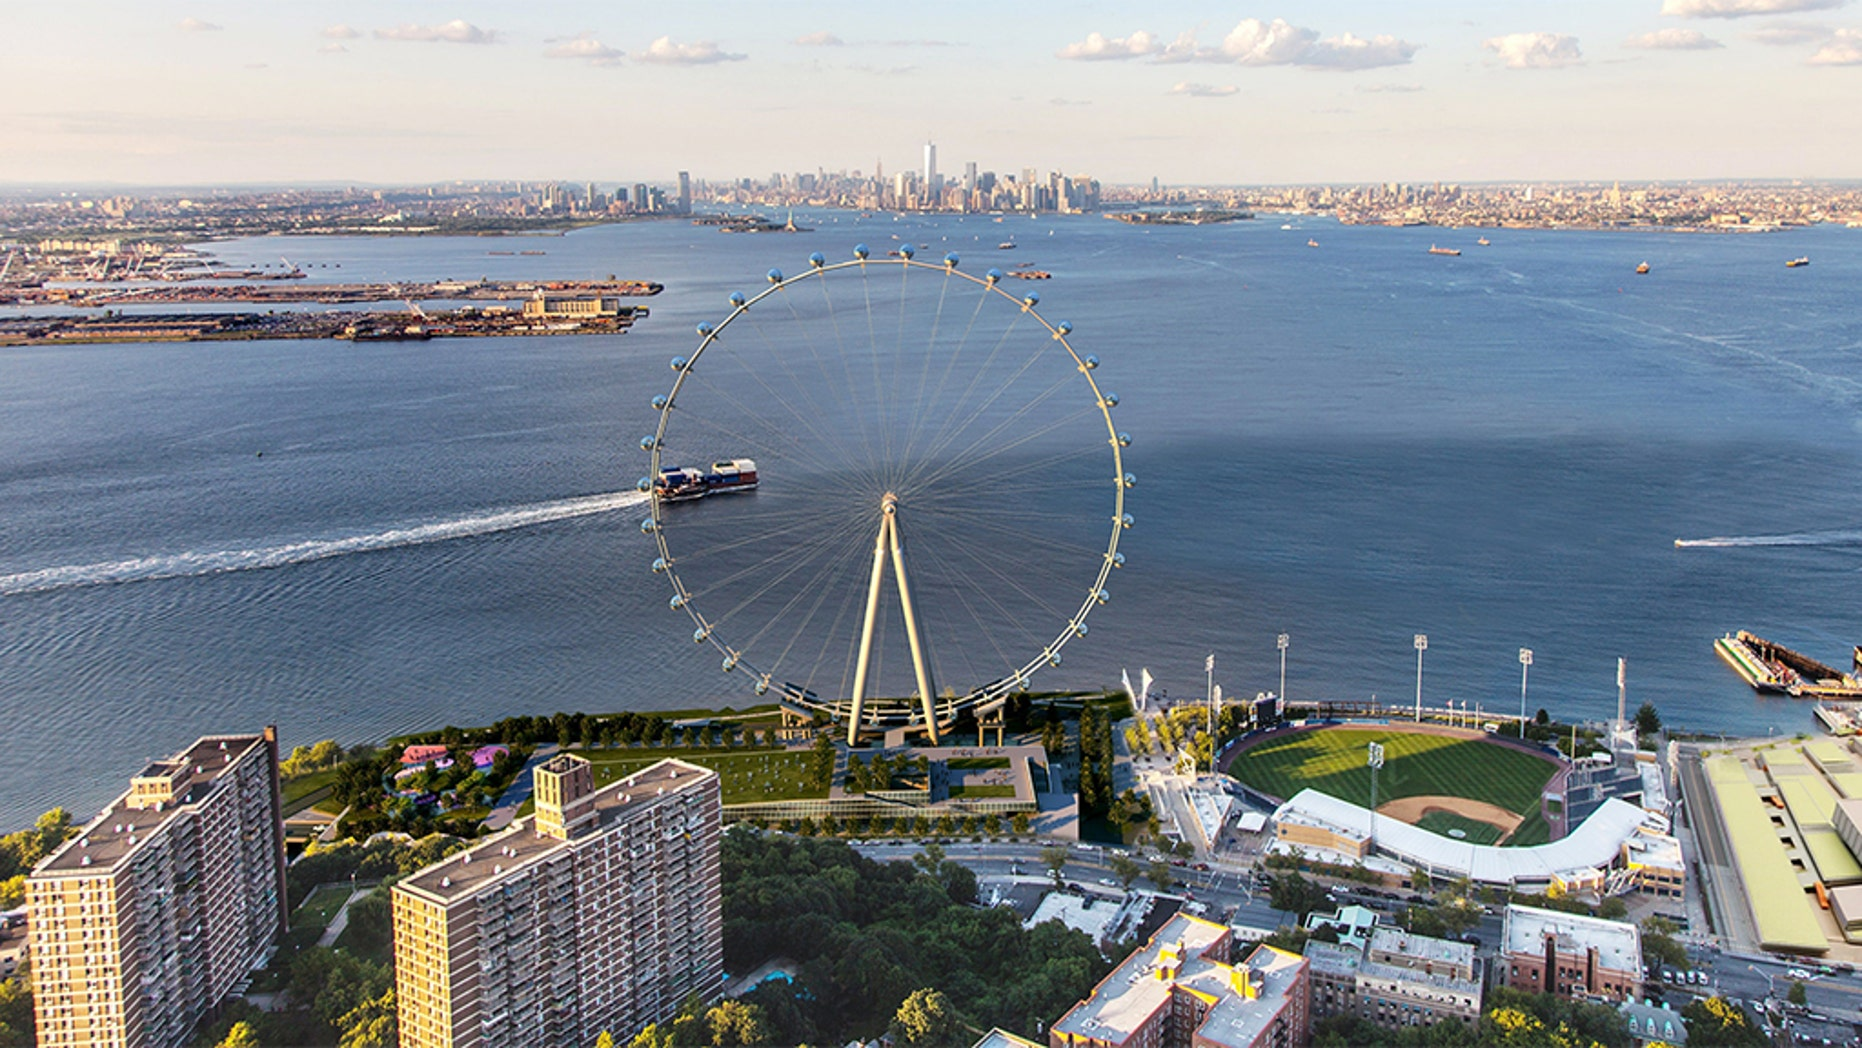 A concept image for the Ferris wheel.